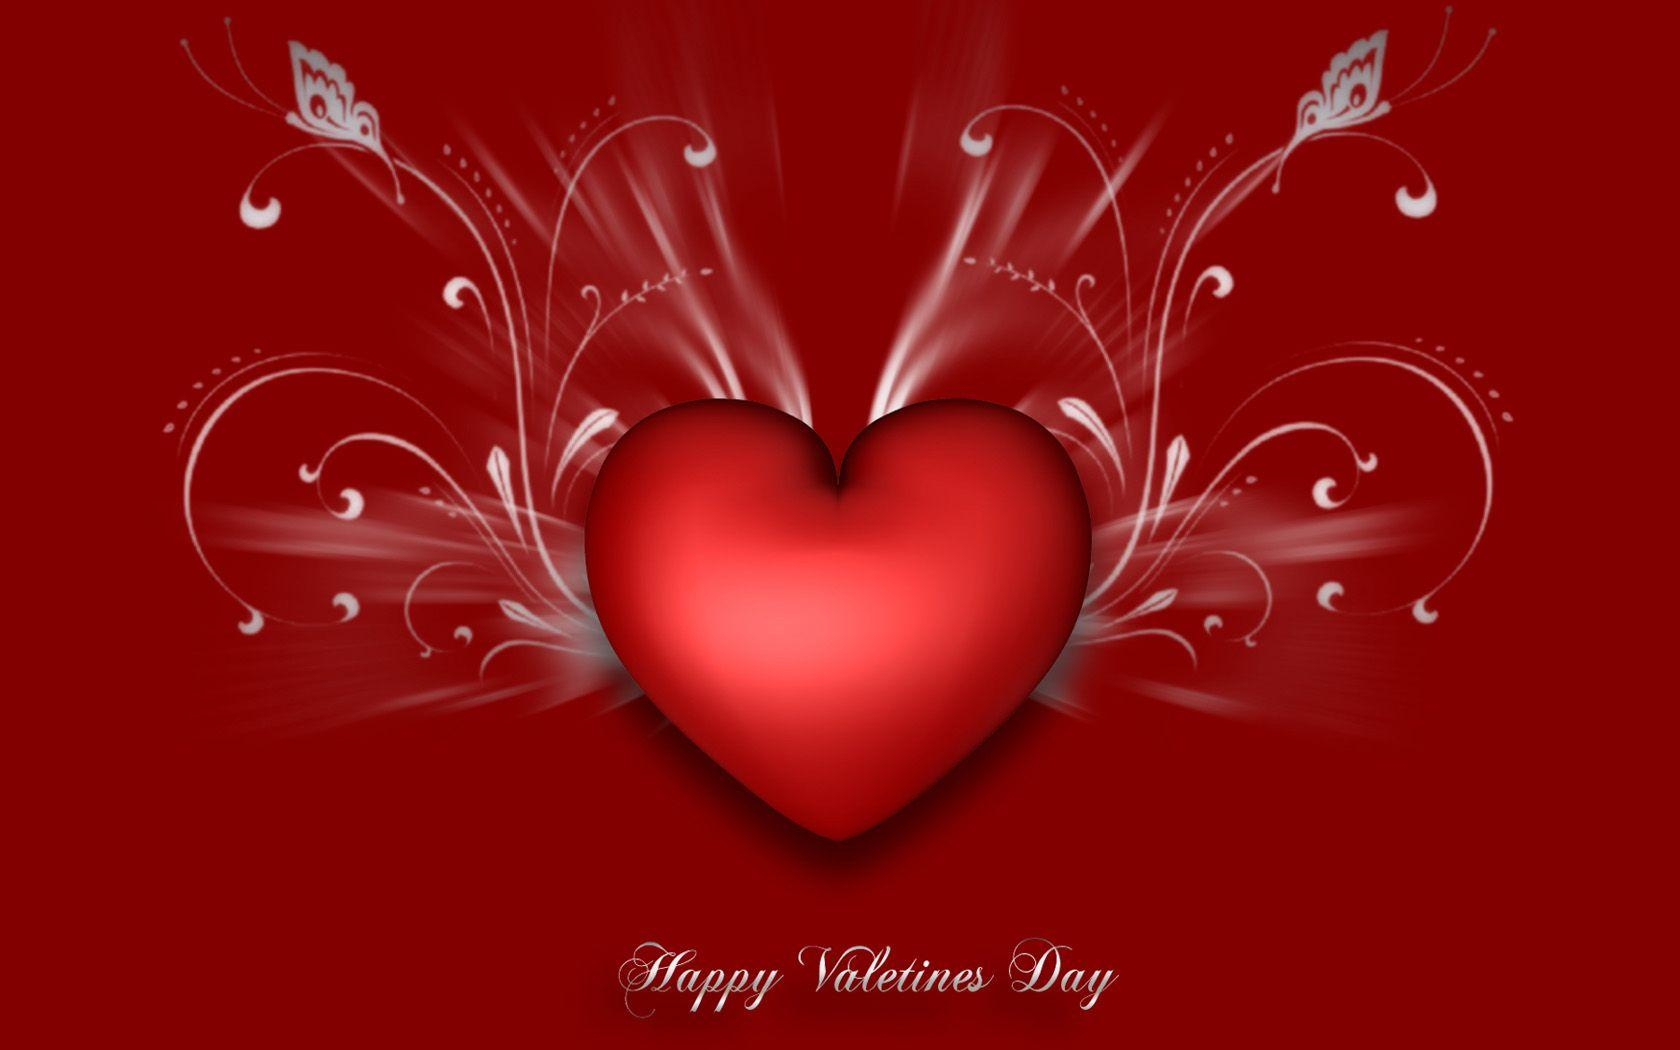 Valentines Day Images   Download Valentines Day Wallpaper